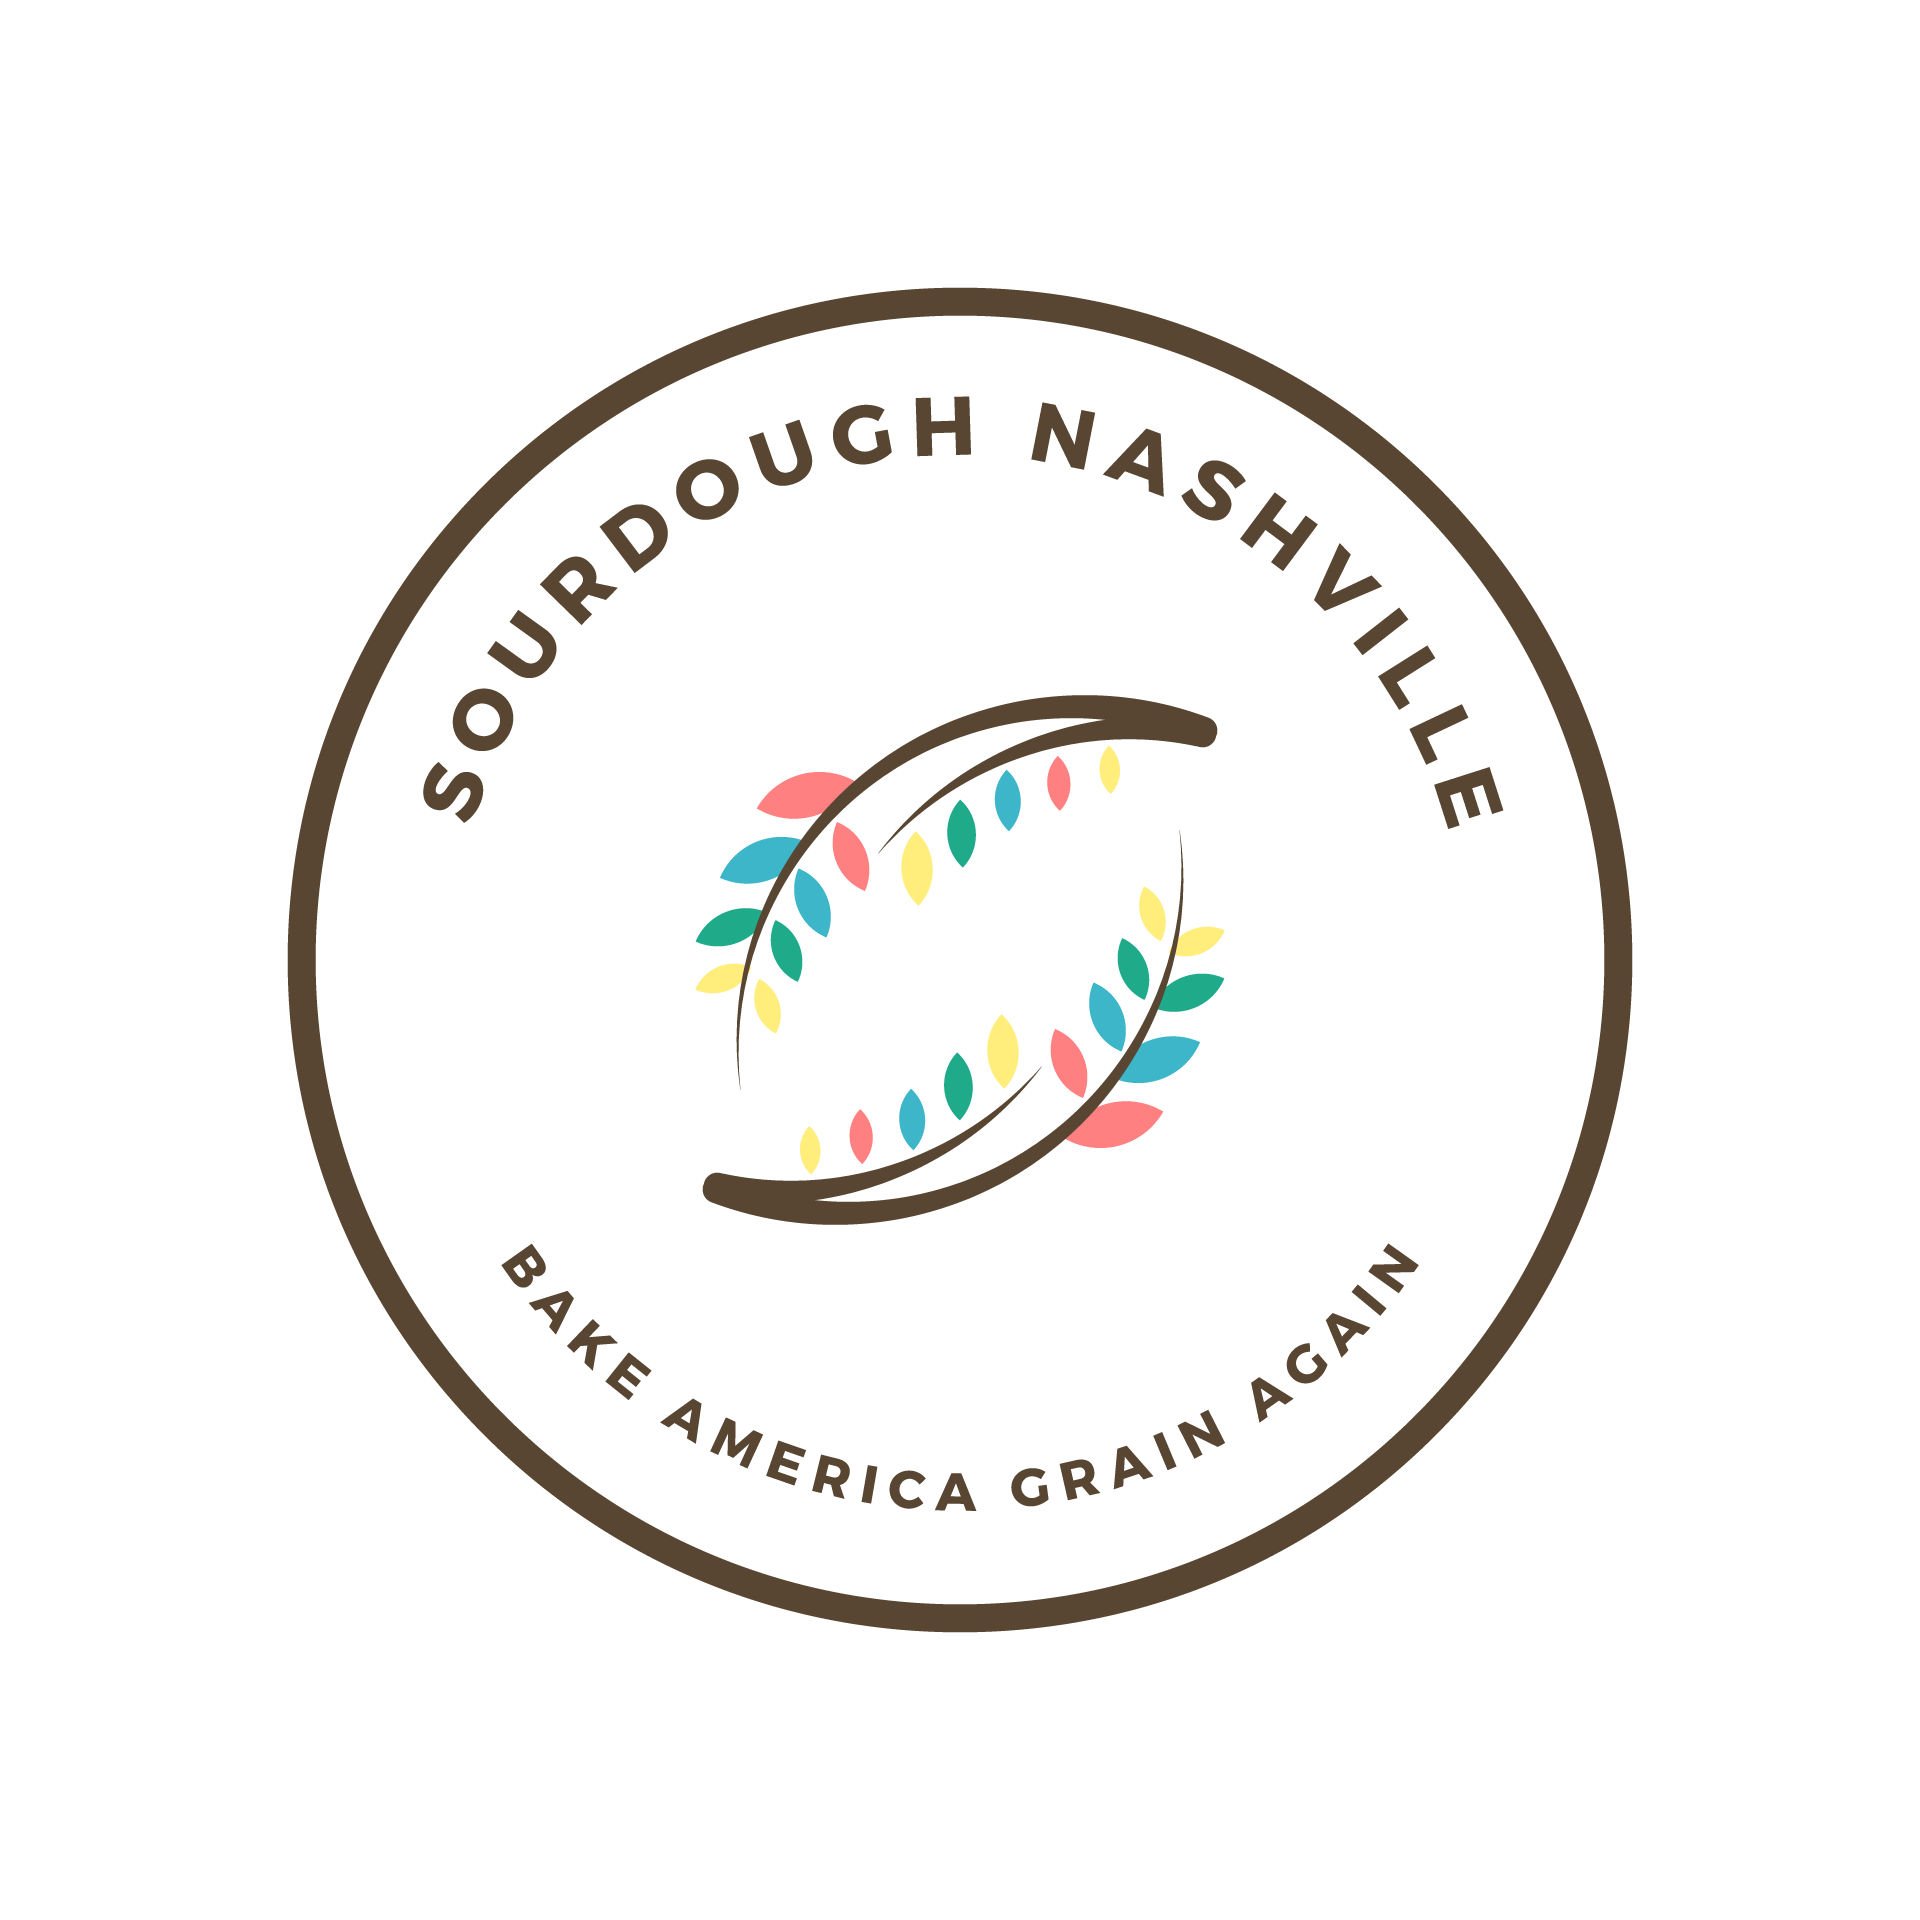 Sourdough-Nashville-Circle-logo-w-taglin